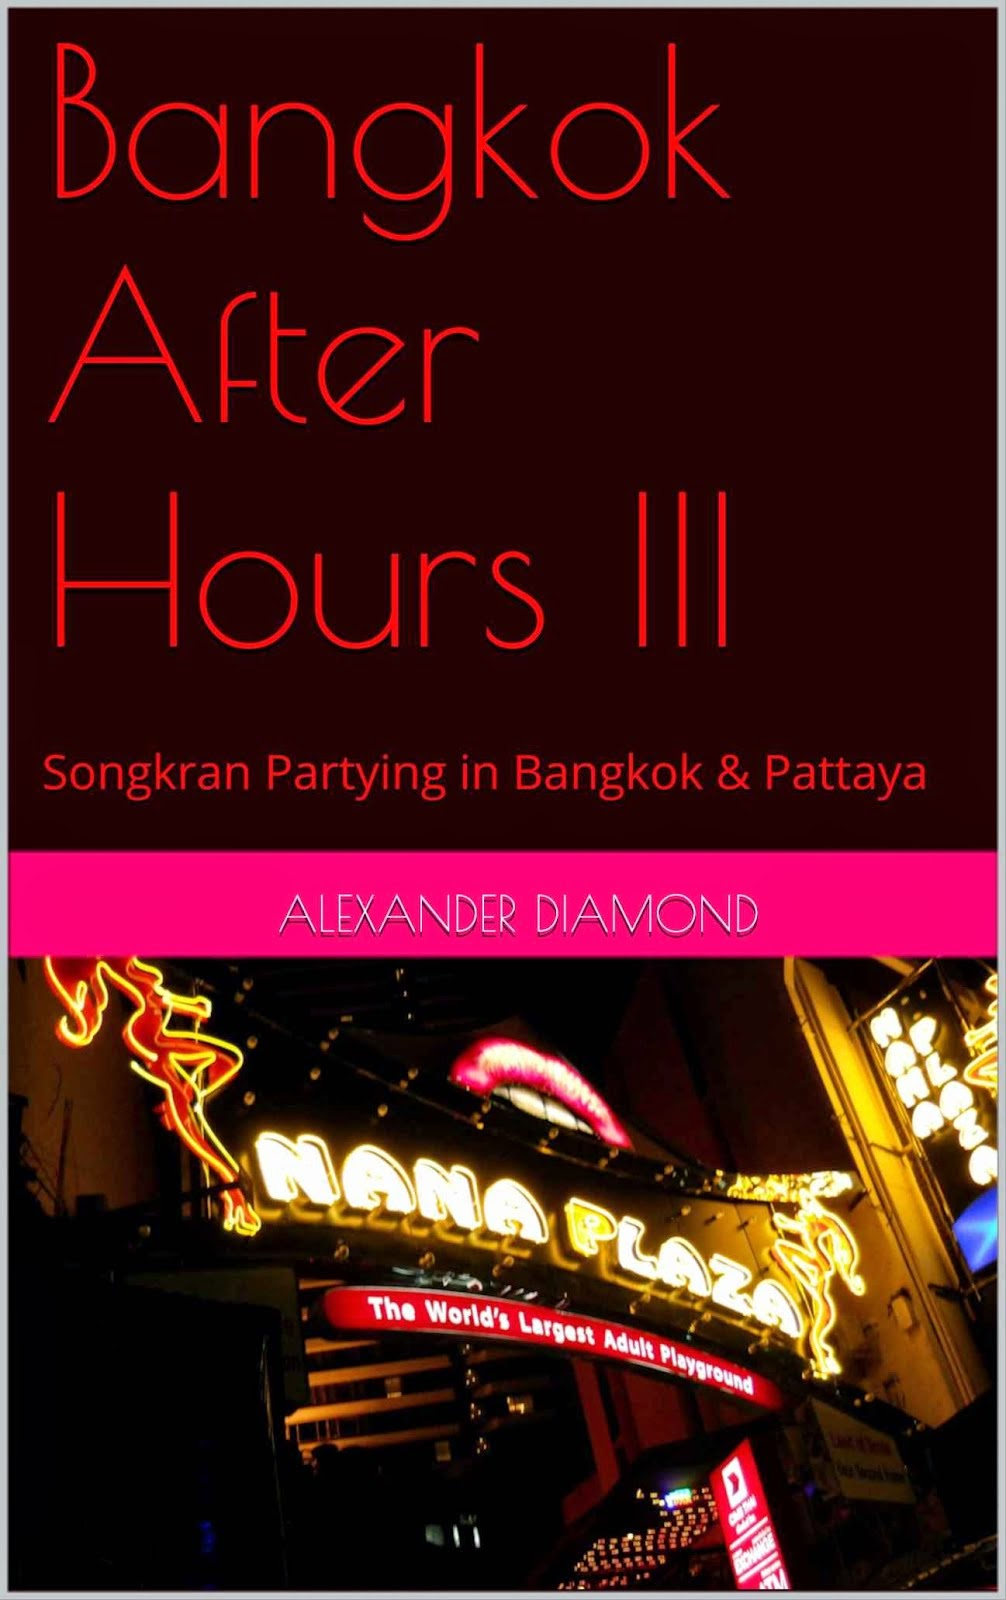 Bangkok After Hours III - Read it today!